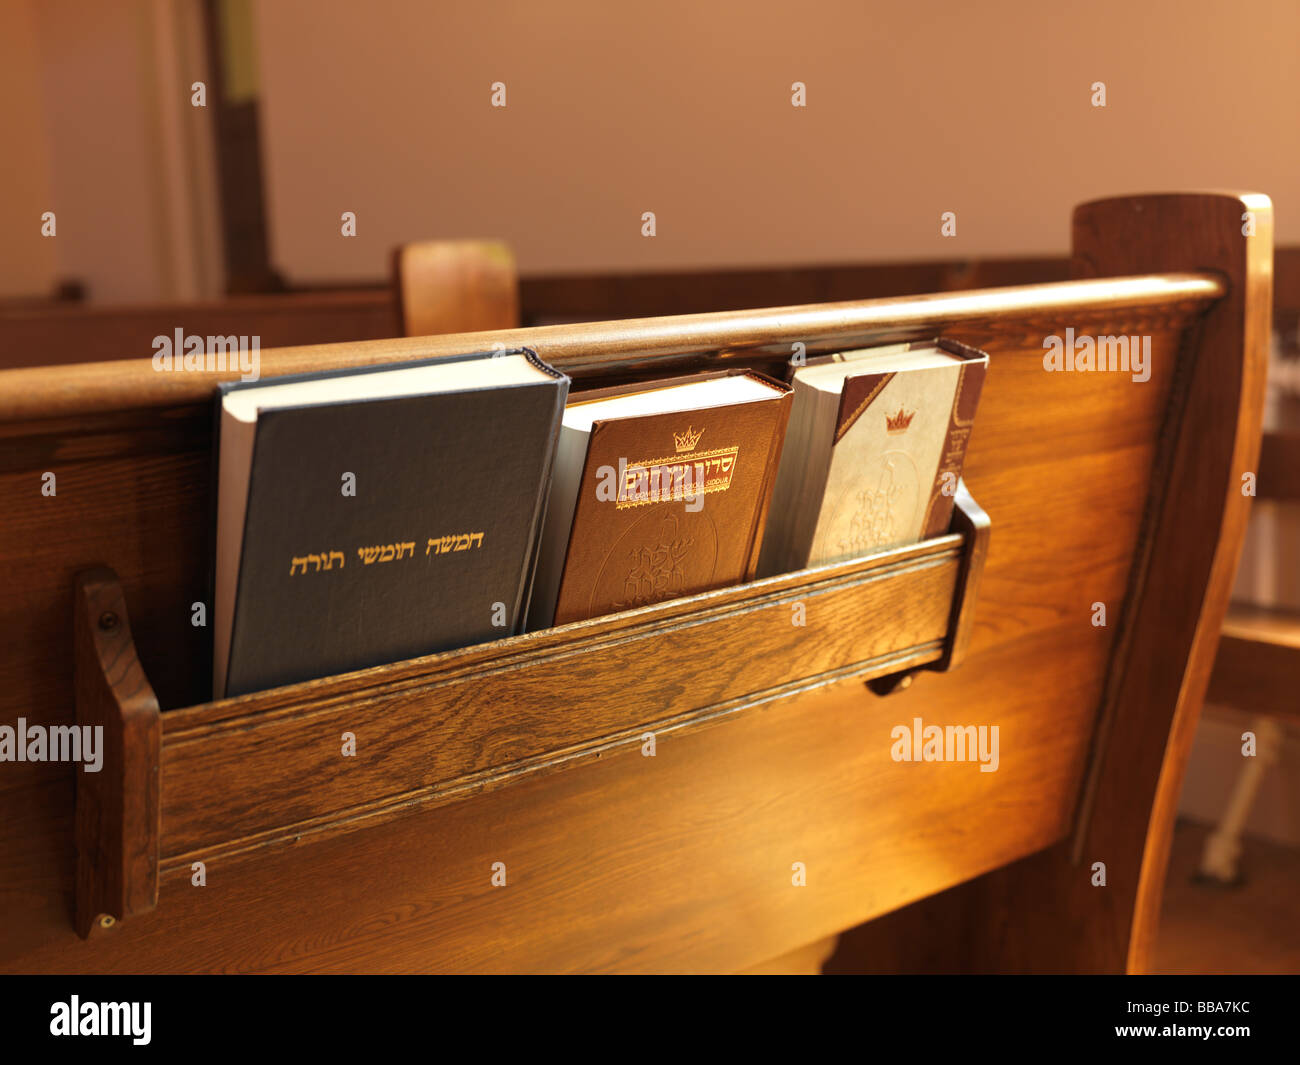 Prayer books on a bench in a Jewish Synagogue - Stock Image